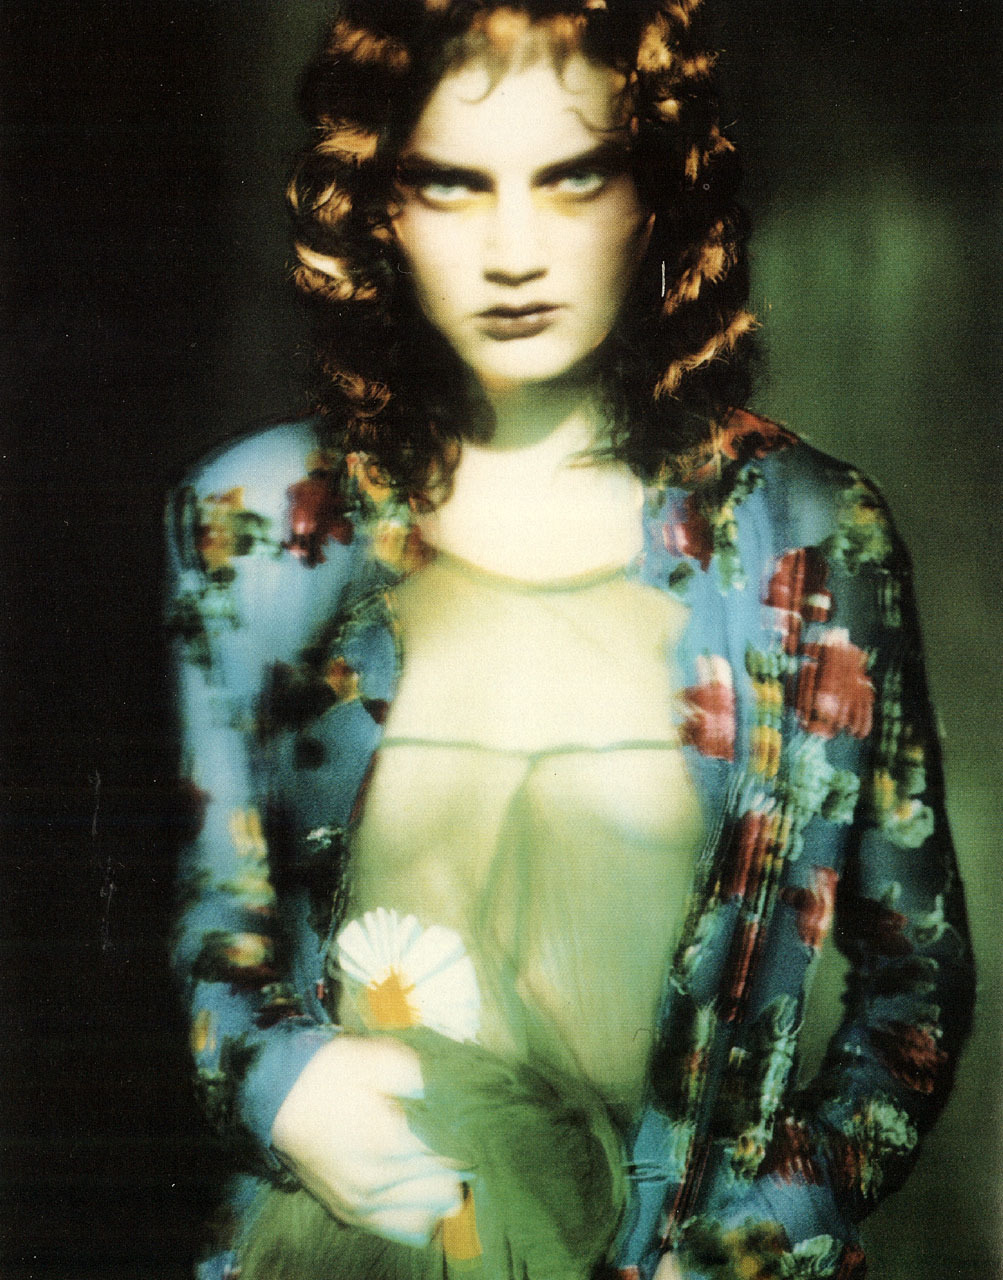 Guinevere van Seenusphotography paolo roversi hair julien d'ys make-up linda cantello Yohji Yamamoto «Rewind/Forward», 238 Fashion Pictures, 1995–2000